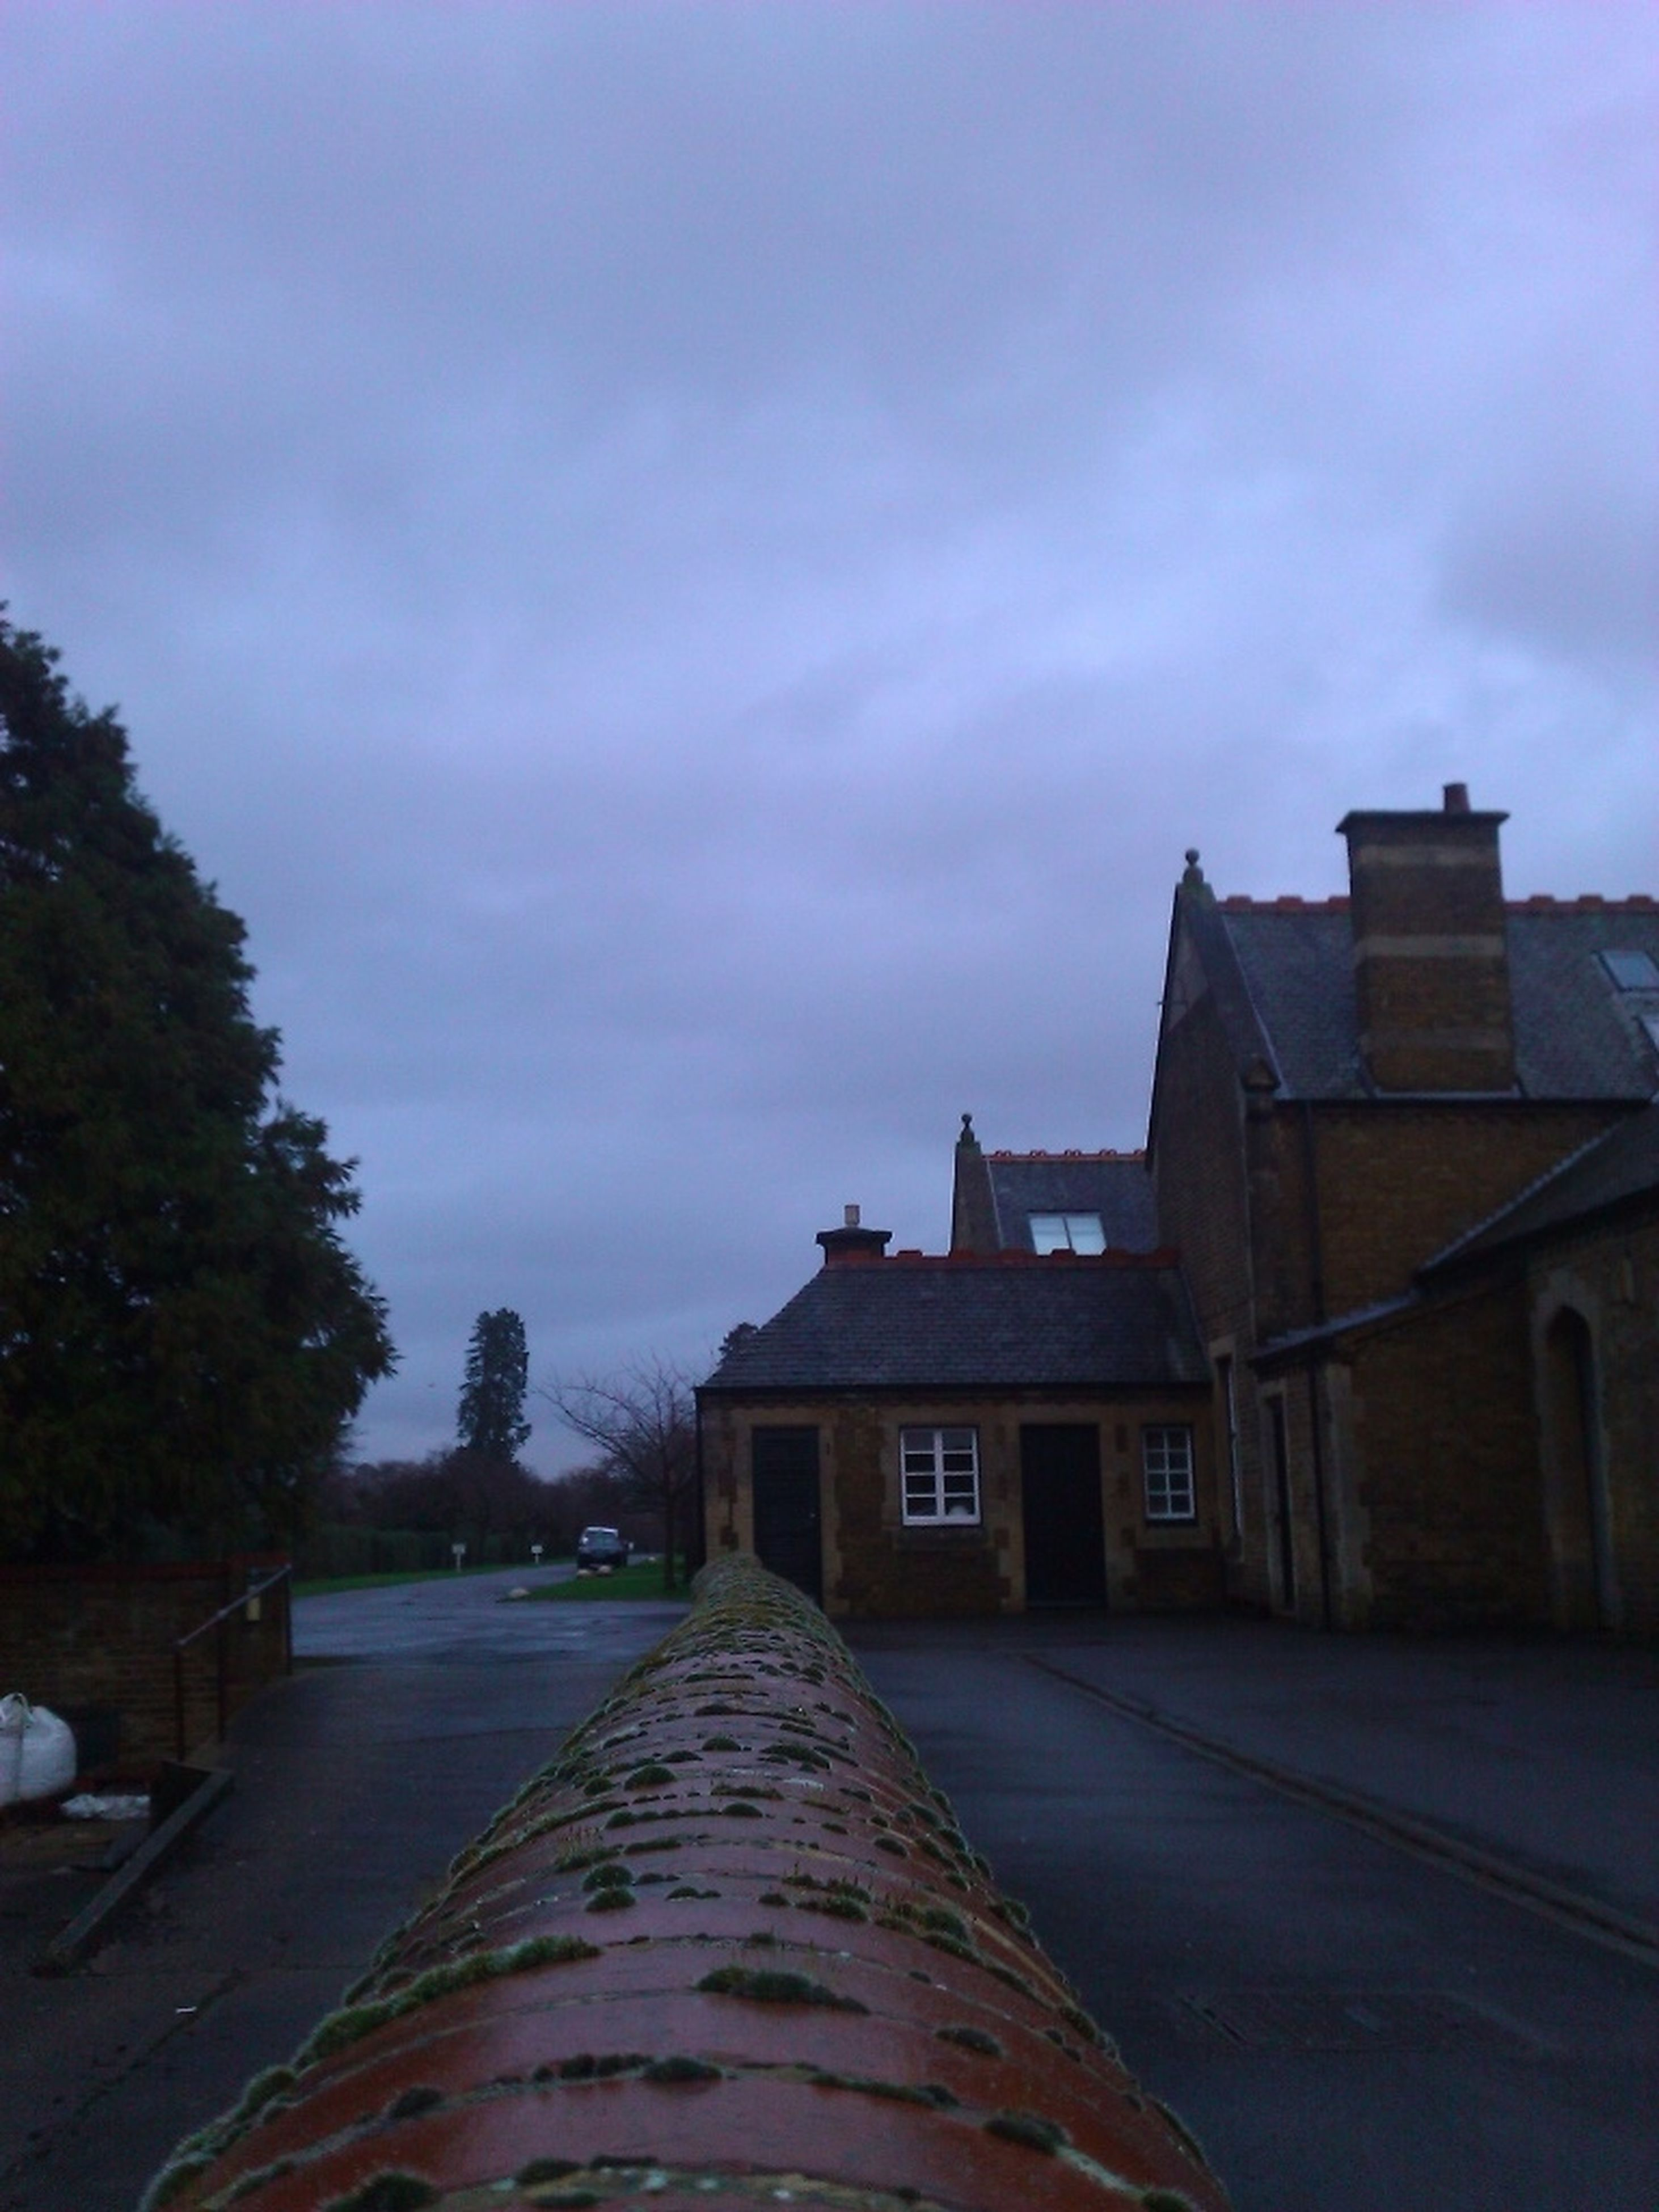 building exterior, the way forward, architecture, built structure, sky, cloud - sky, house, street, diminishing perspective, road, walkway, cloudy, residential structure, cloud, vanishing point, cobblestone, empty, outdoors, footpath, residential building